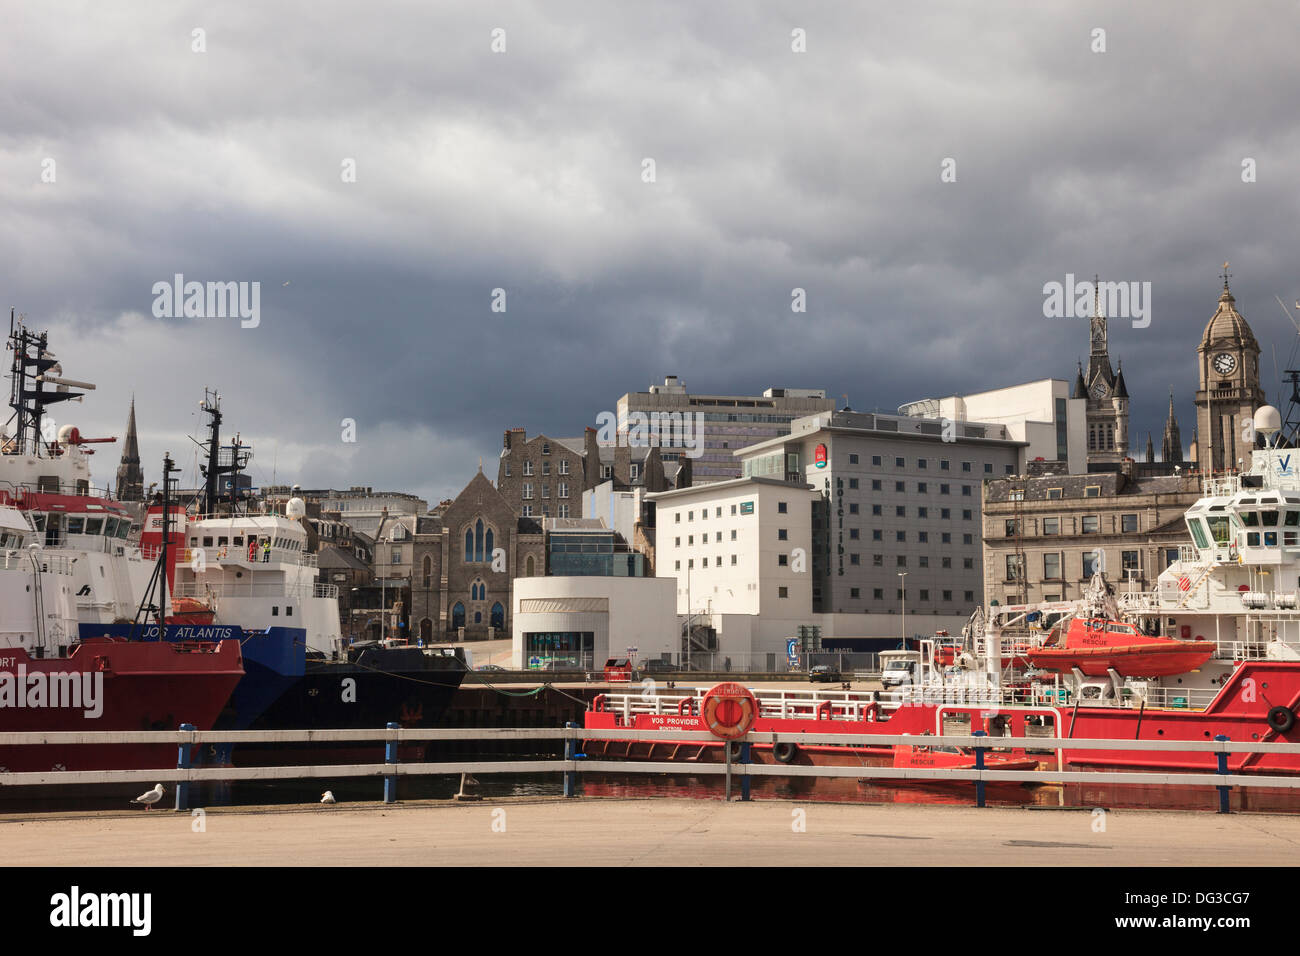 City centre buildings and Ibis Hotel from port with North Sea offshore supply ships in dock in Aberdeen Scotland UK - Stock Image